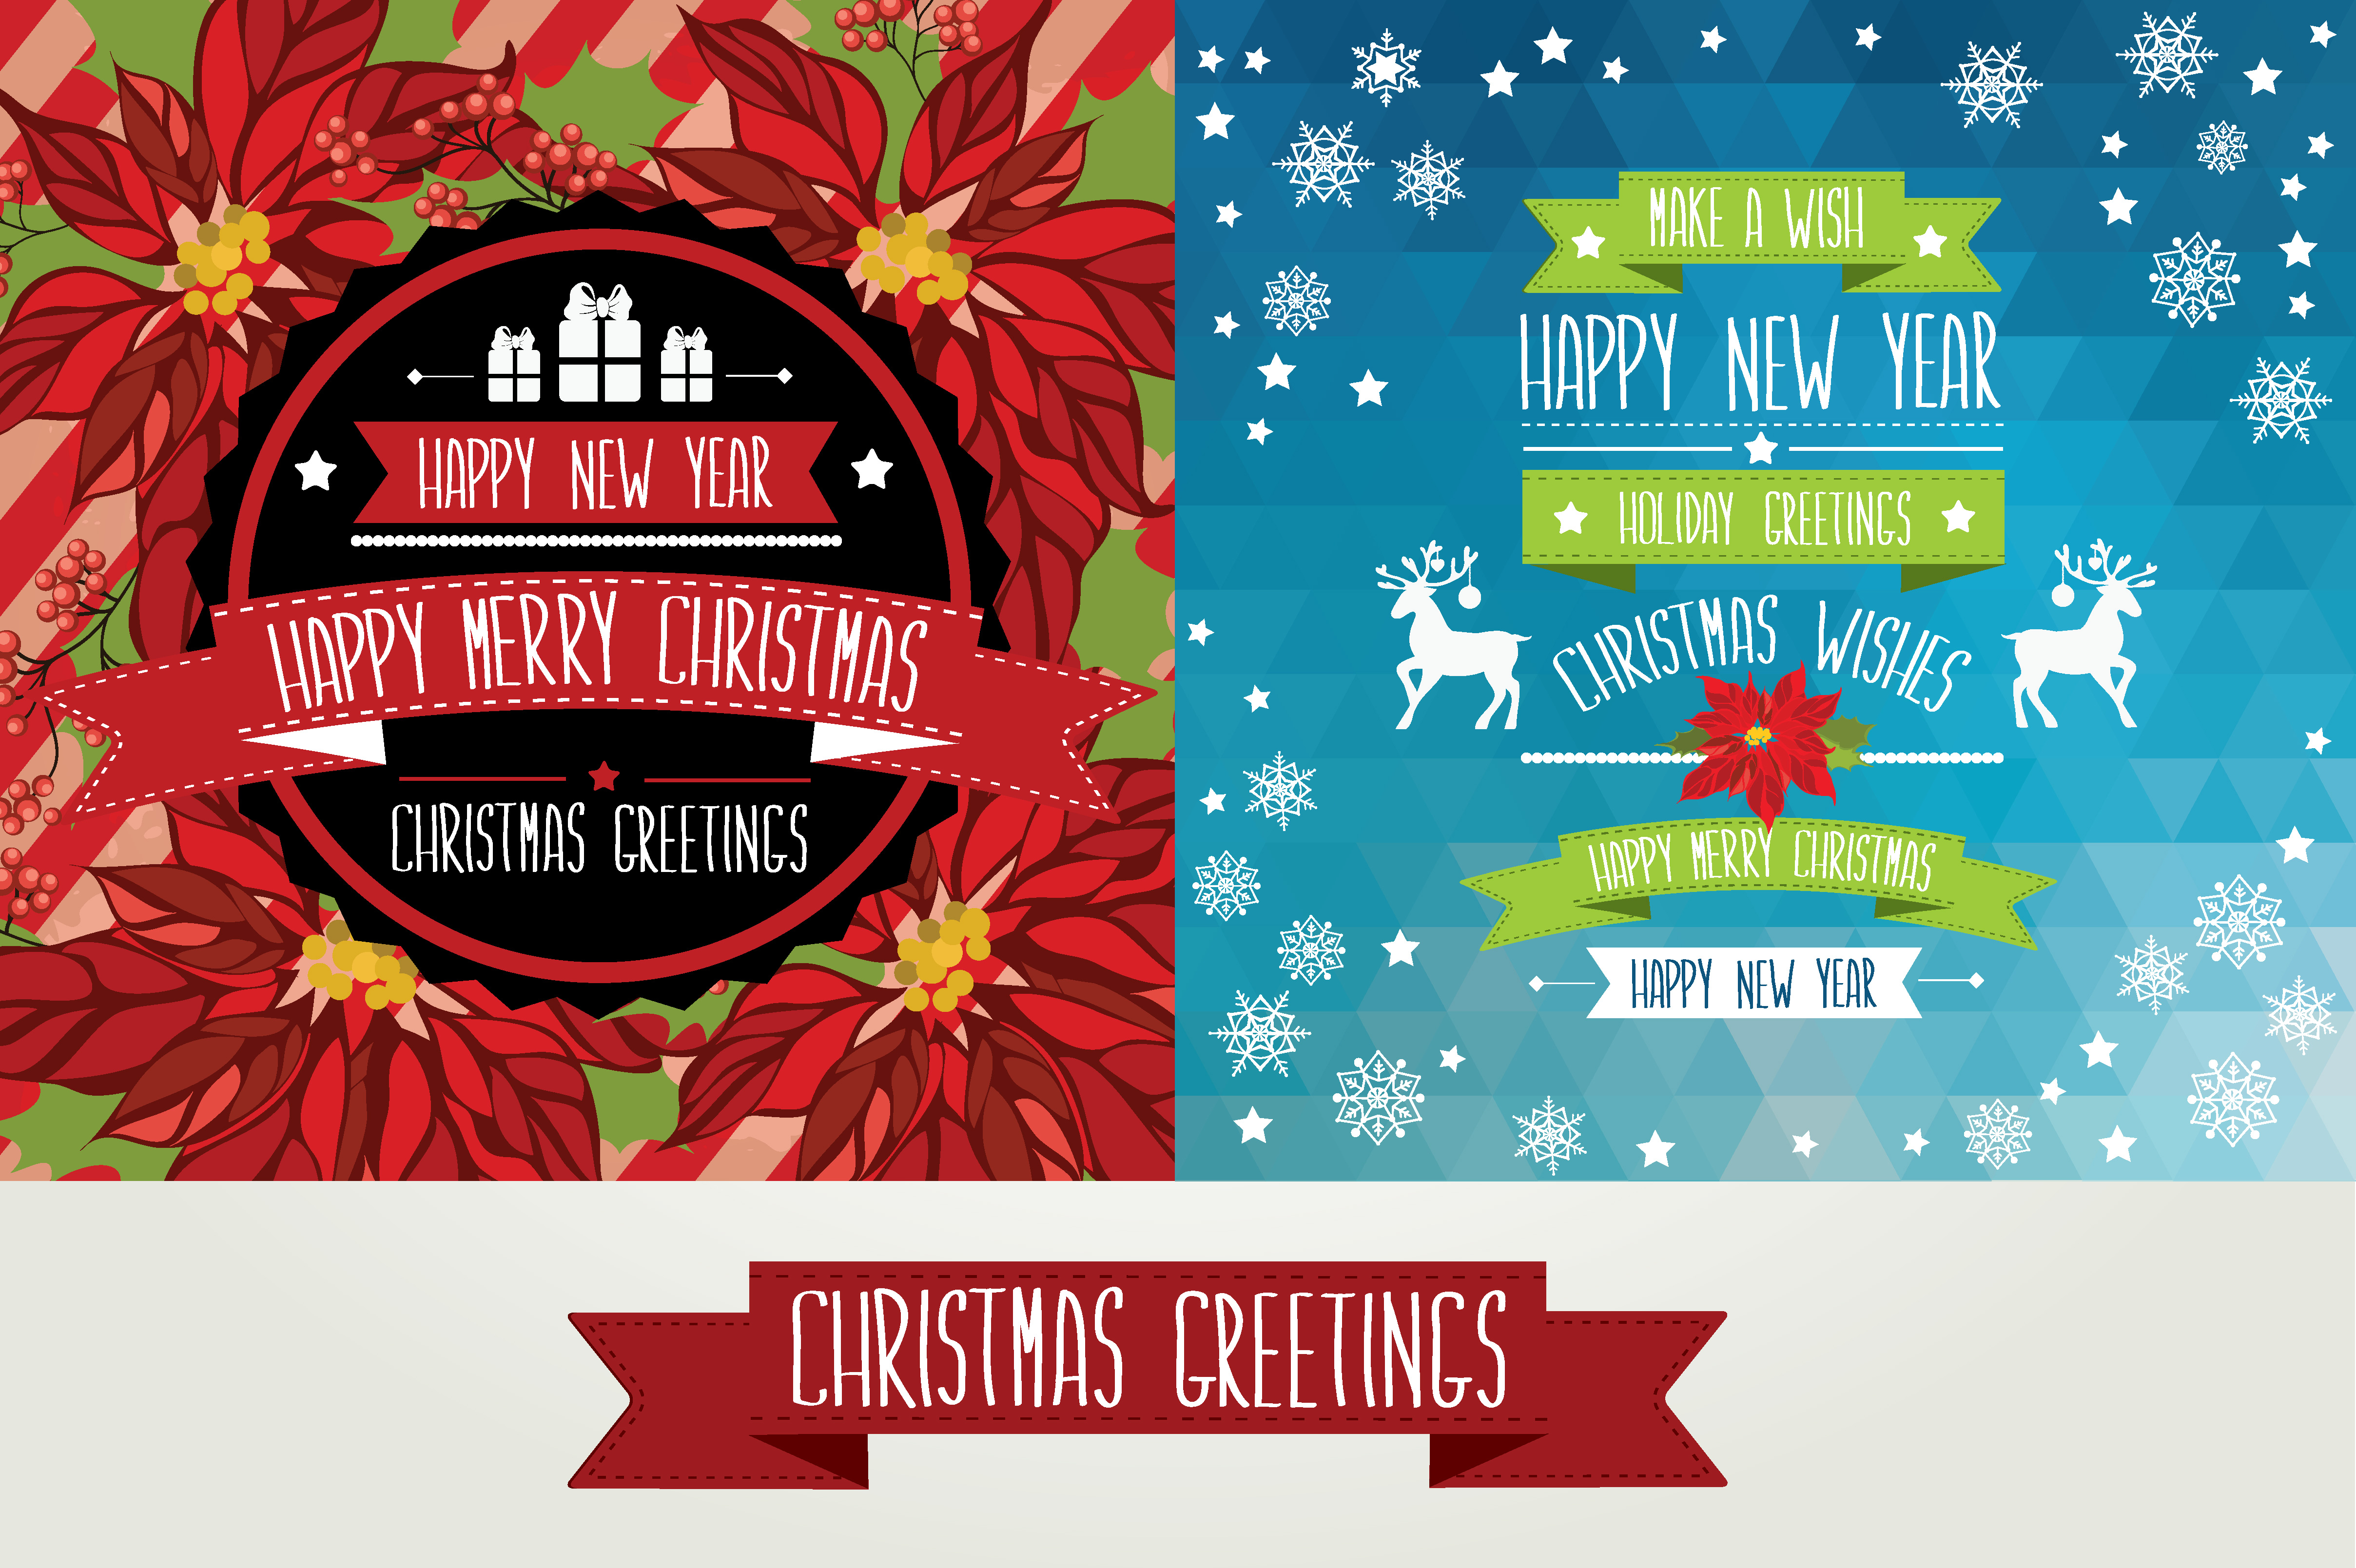 Xmas poster design - View Image Found On Christmas Poster Design Html